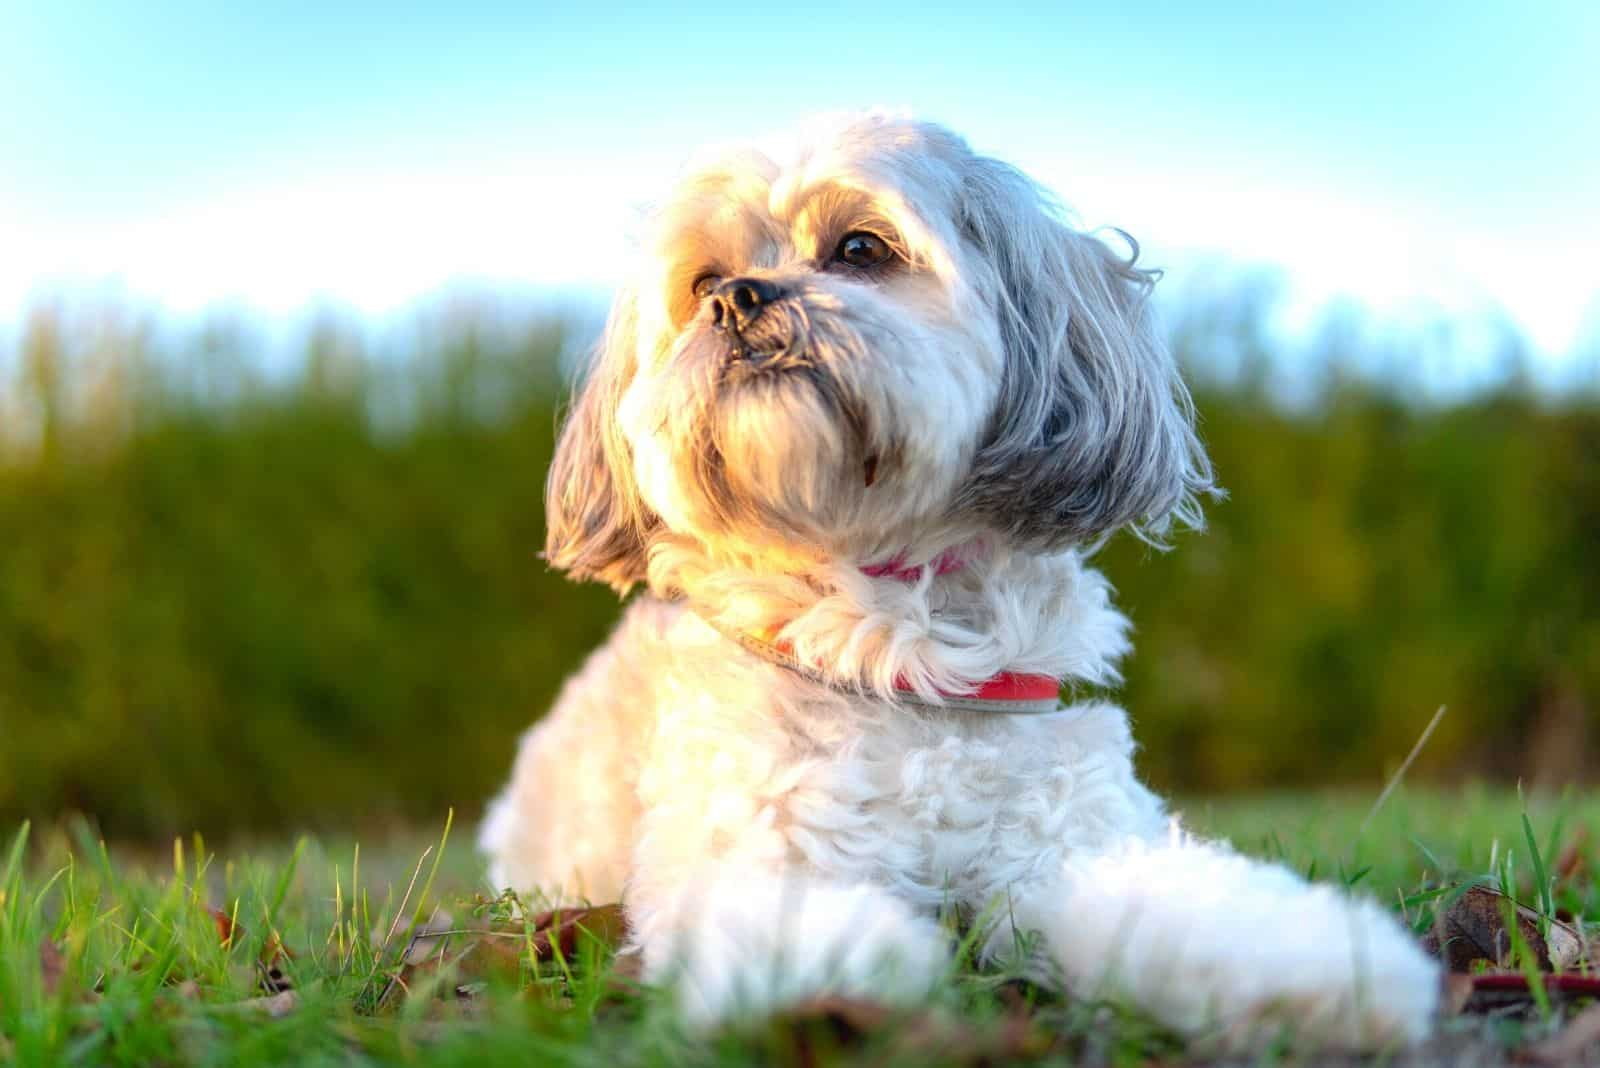 dog shih tzu sitting in the ground outdoors looking away